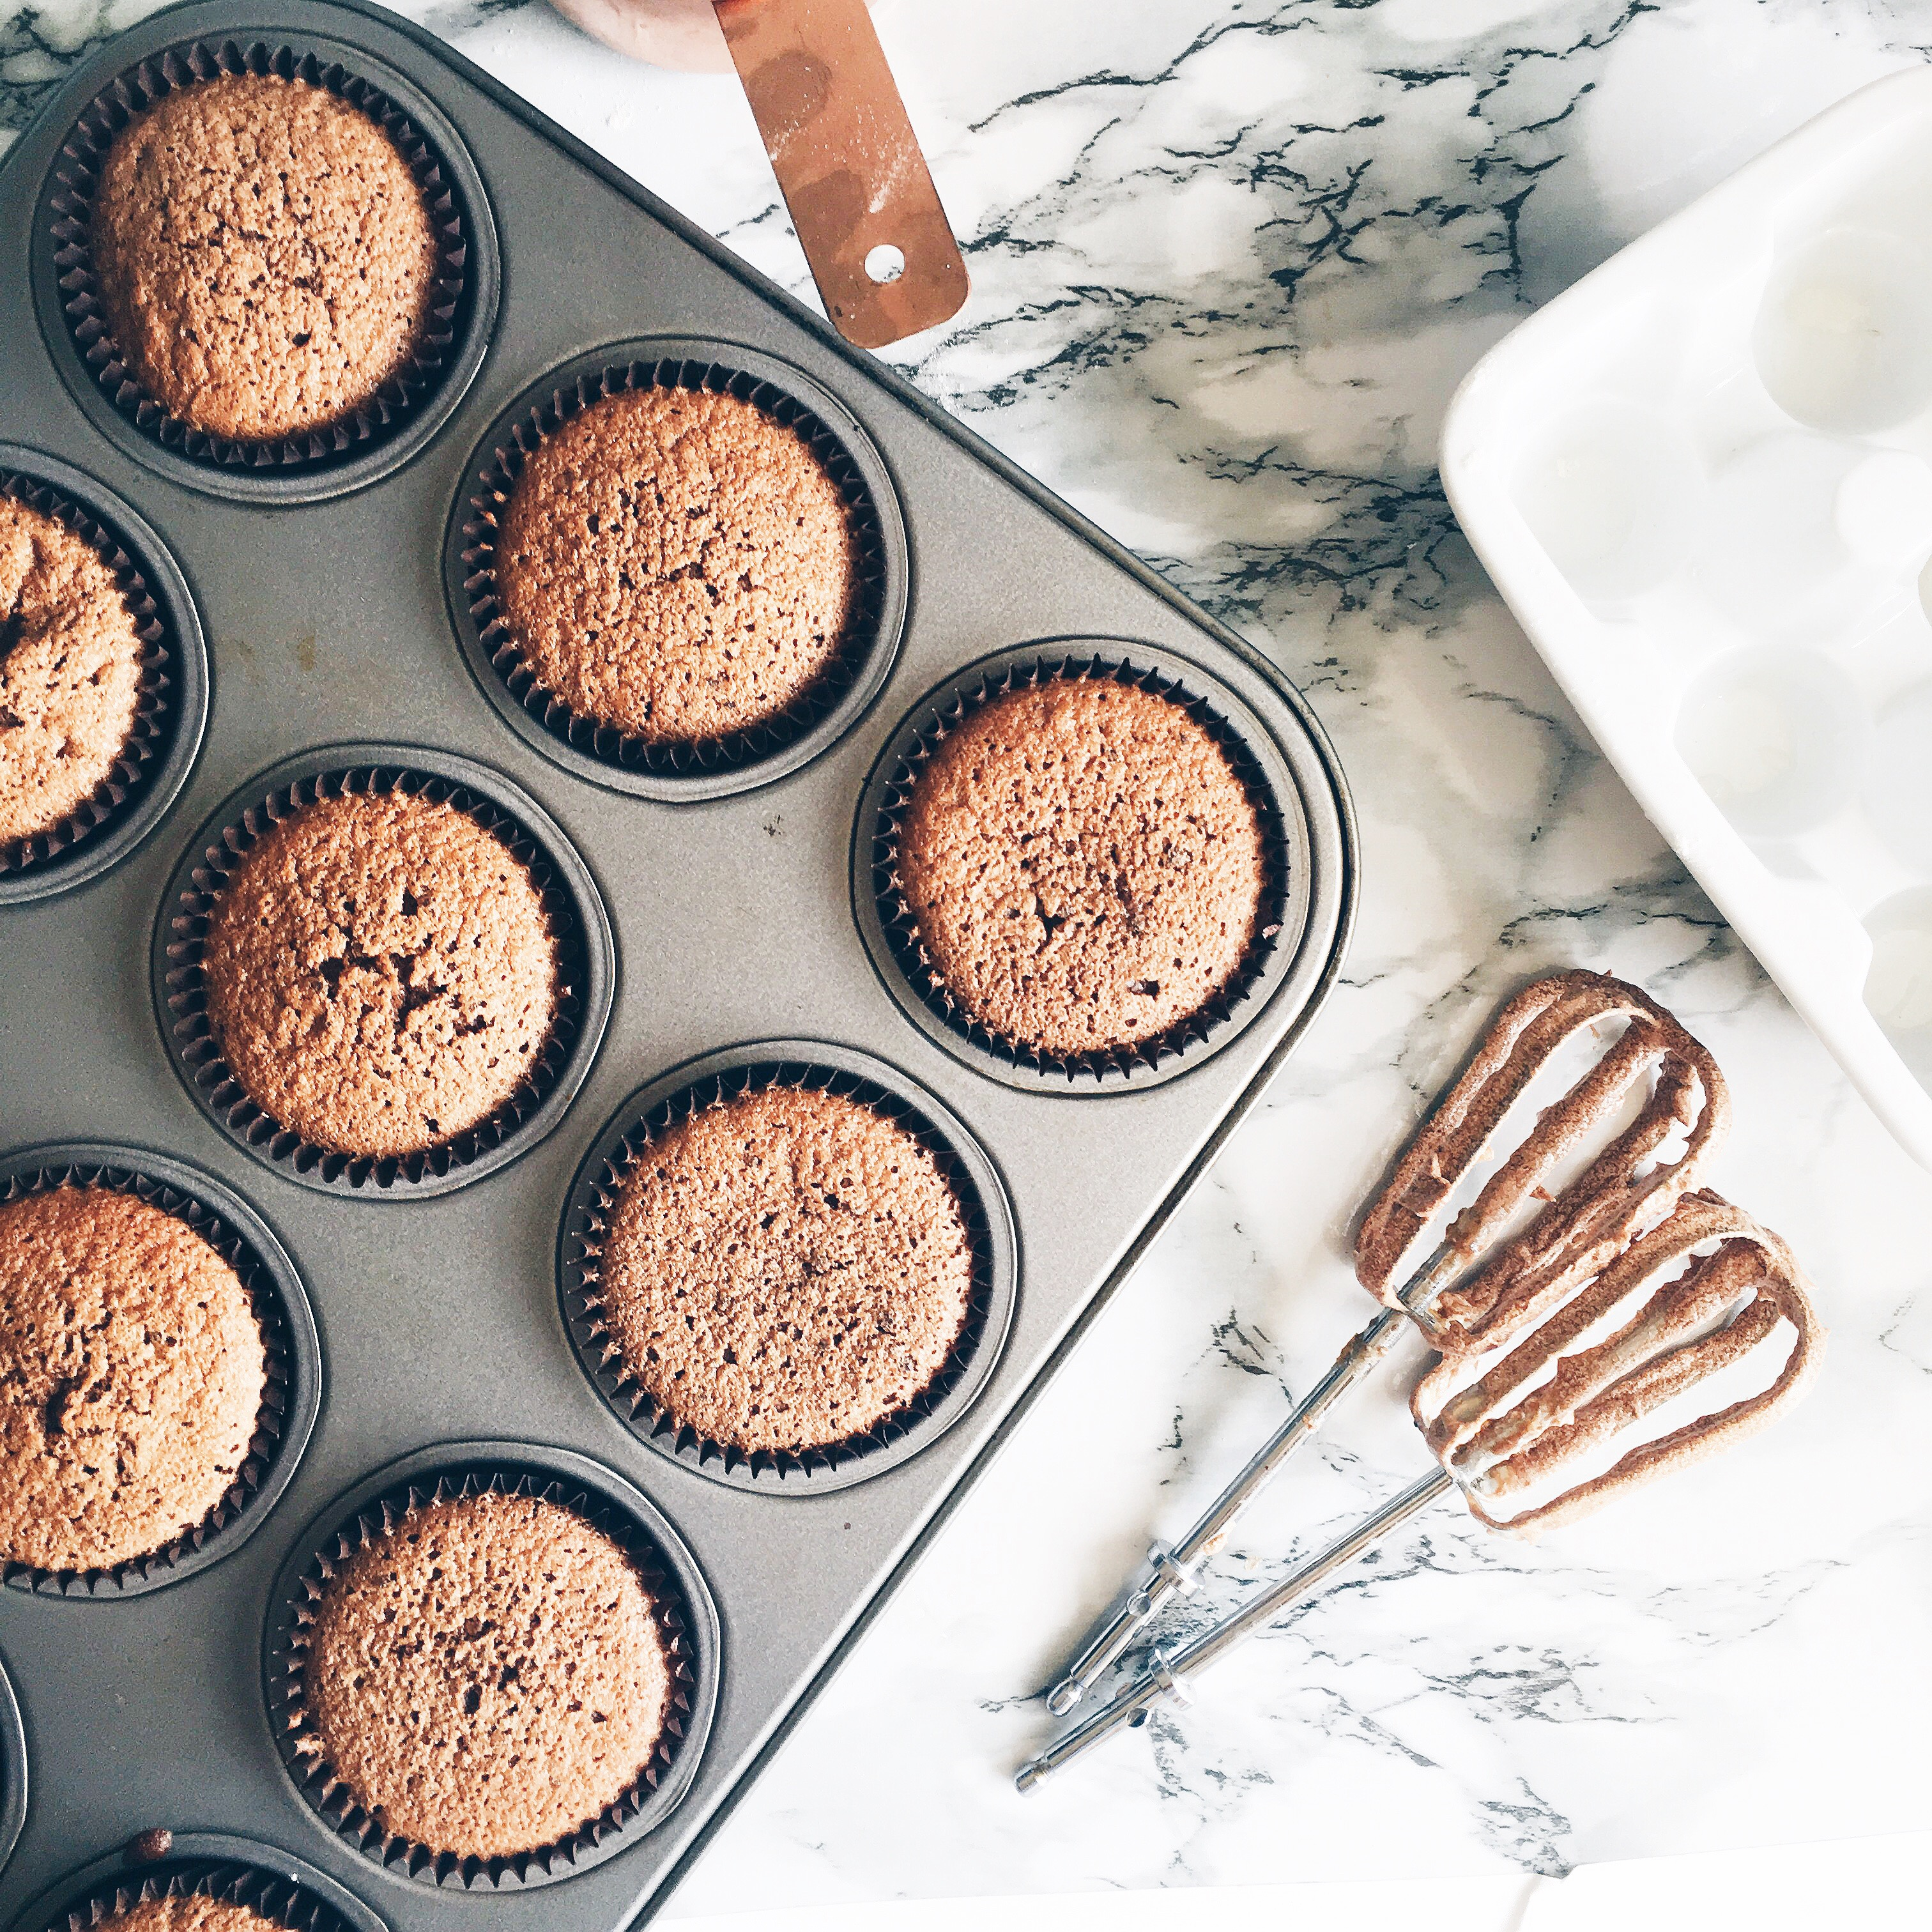 6 Tips For A Kitchen You Can Love For A Lifetime: Baking Safety: When Bake-Off Inspiration Doesn't Go To Plan